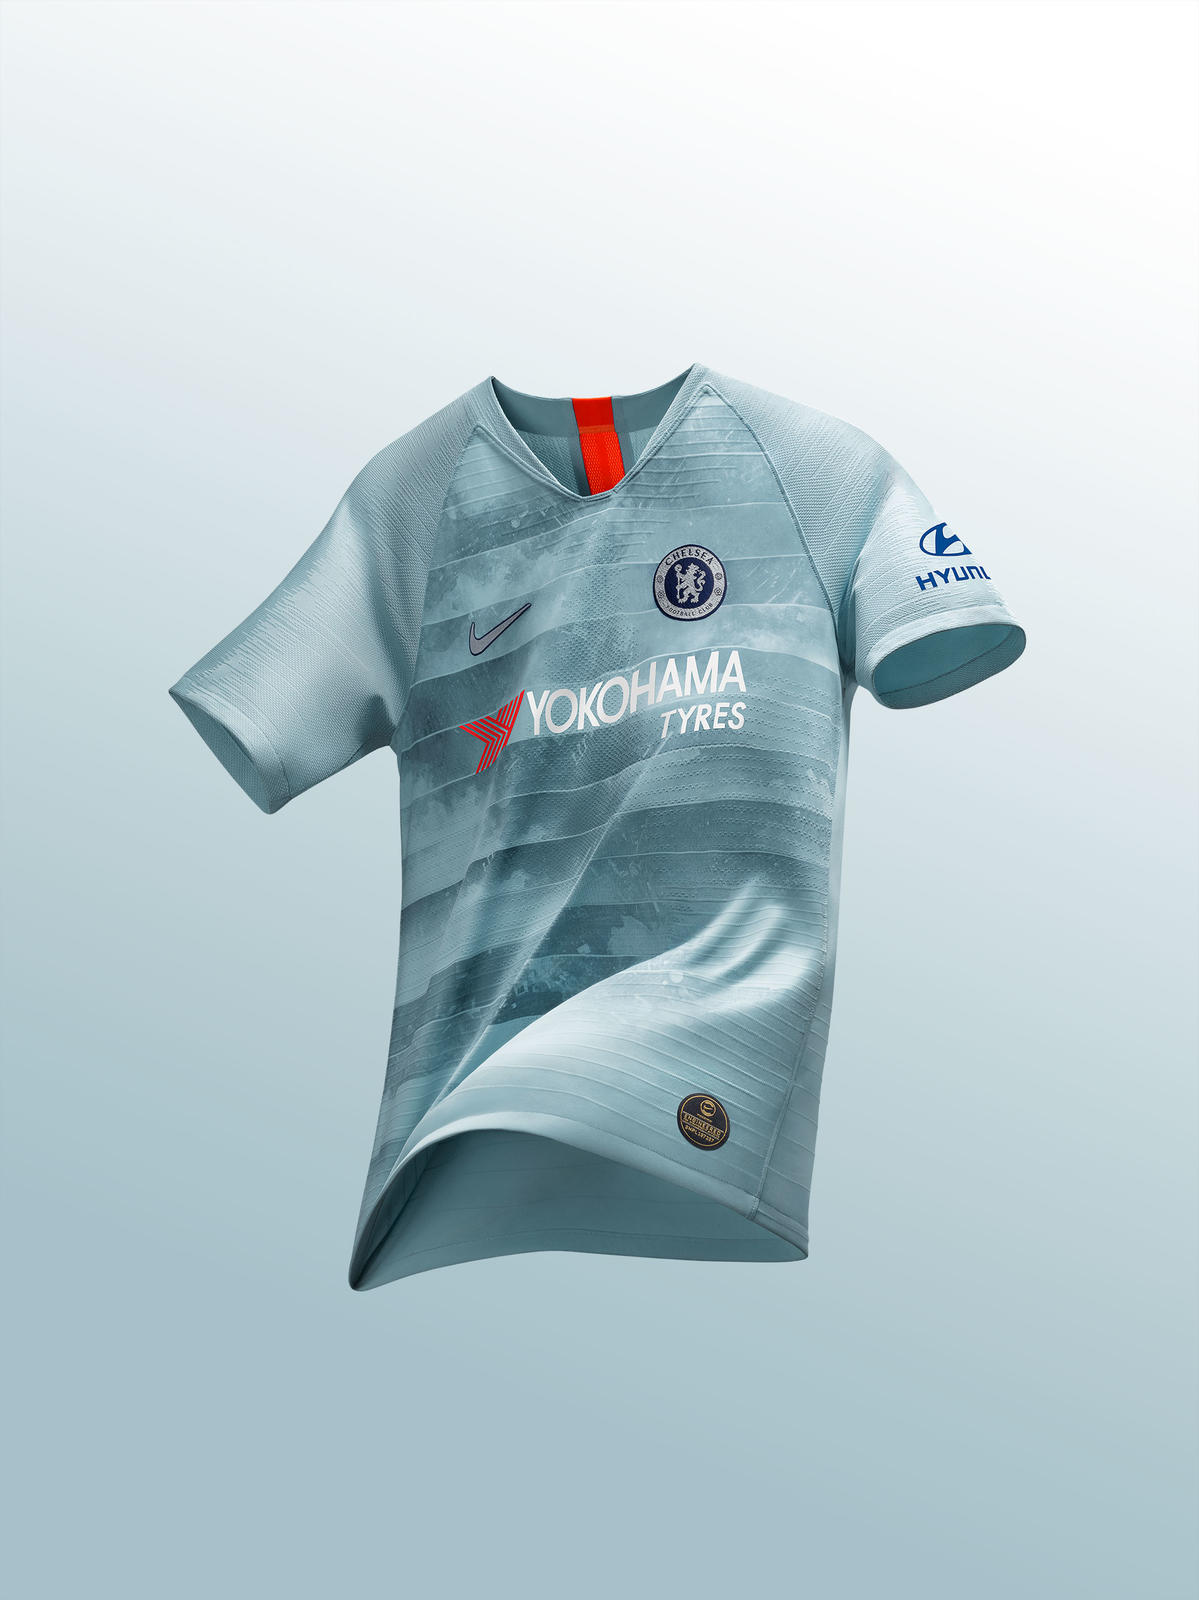 san francisco 31218 a10e7 The Chelsea FC 2018-2019 Kit Unlocks A New Way for Fans to ...